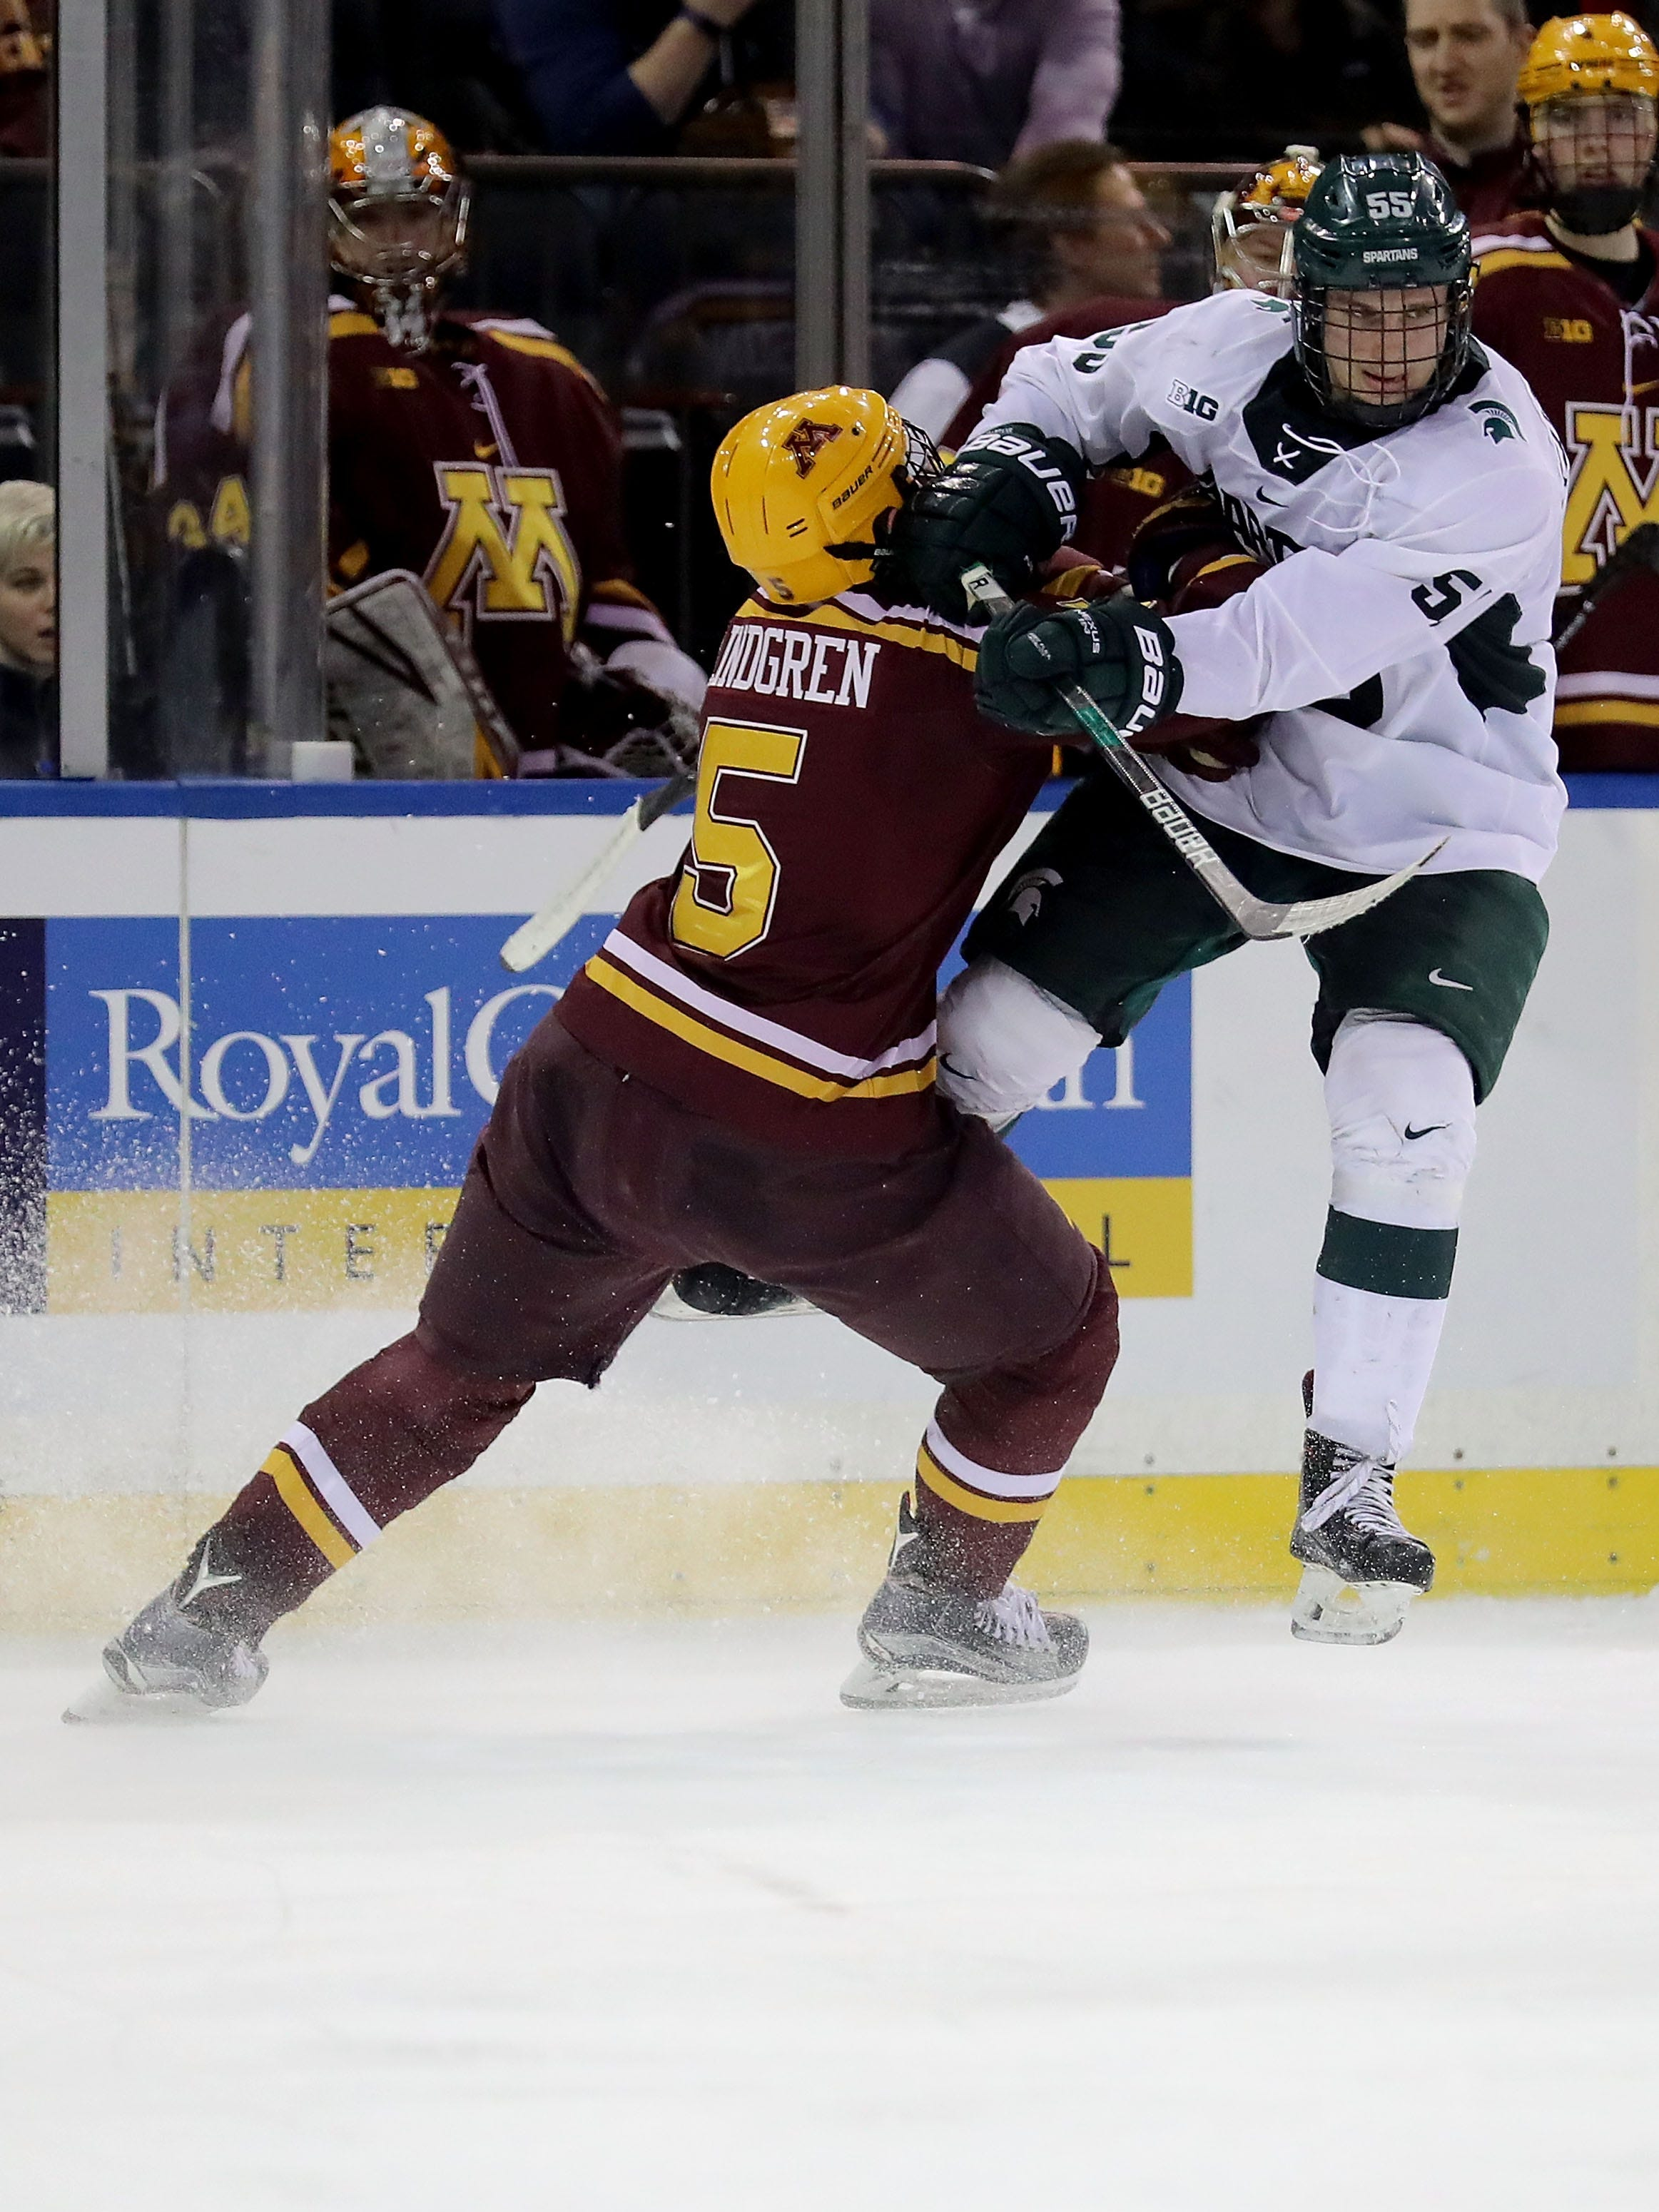 BIG10: MSU Hockey Looking To End Five-game Skid On The Road Against Struggling Minnesota